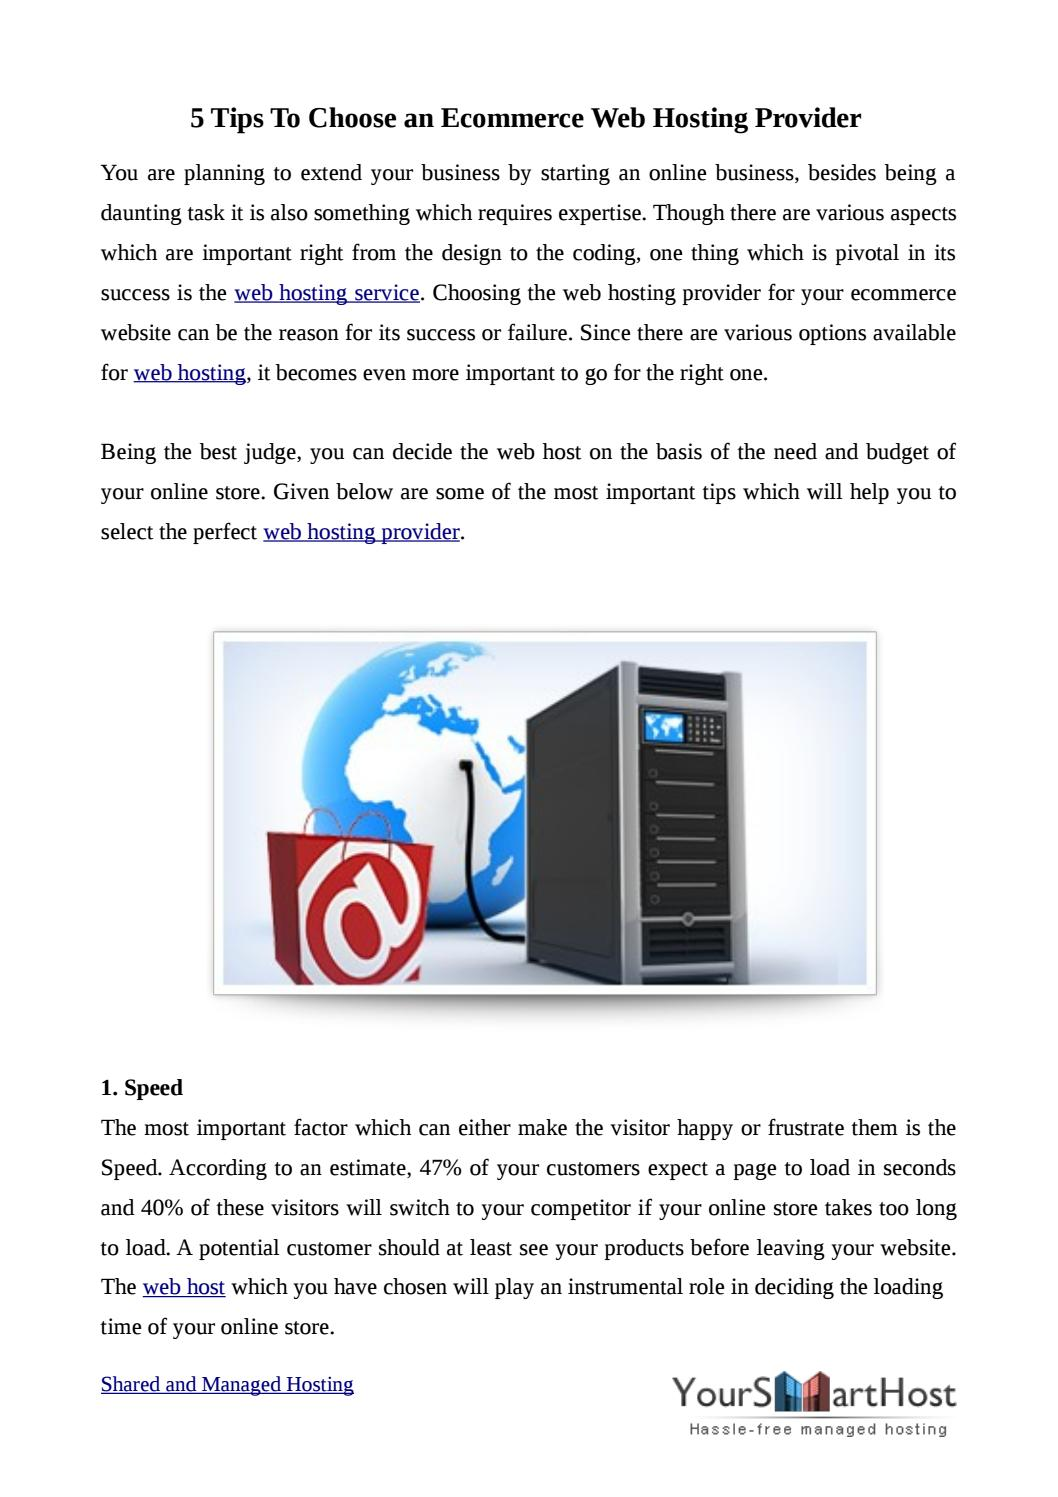 5 Services To Look For In An Ecommerce Web Hosting Provider By Yoursmarthost Issuu